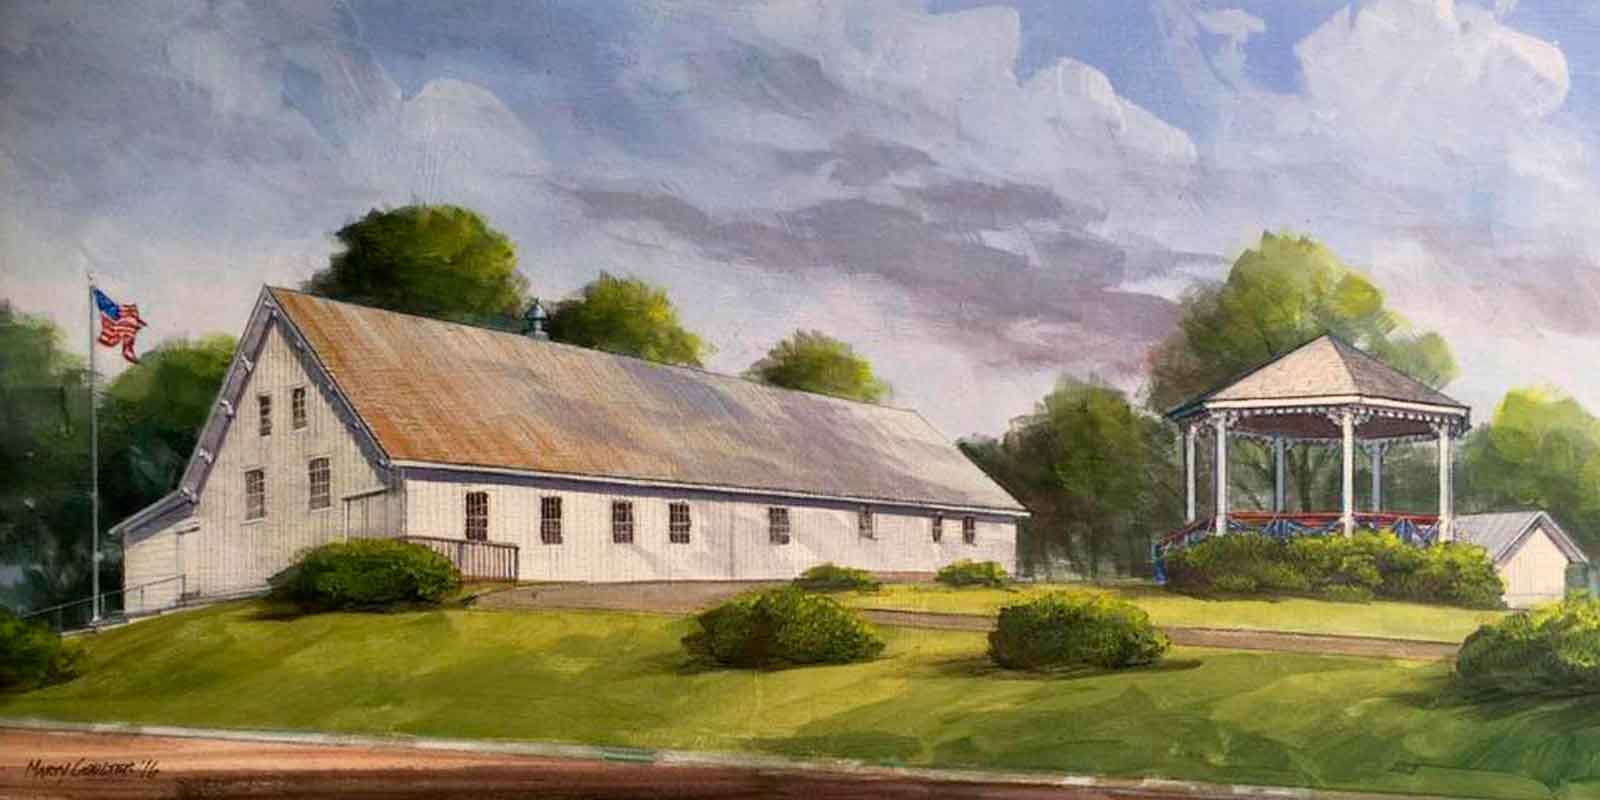 Augusta Heritage Foundation painting